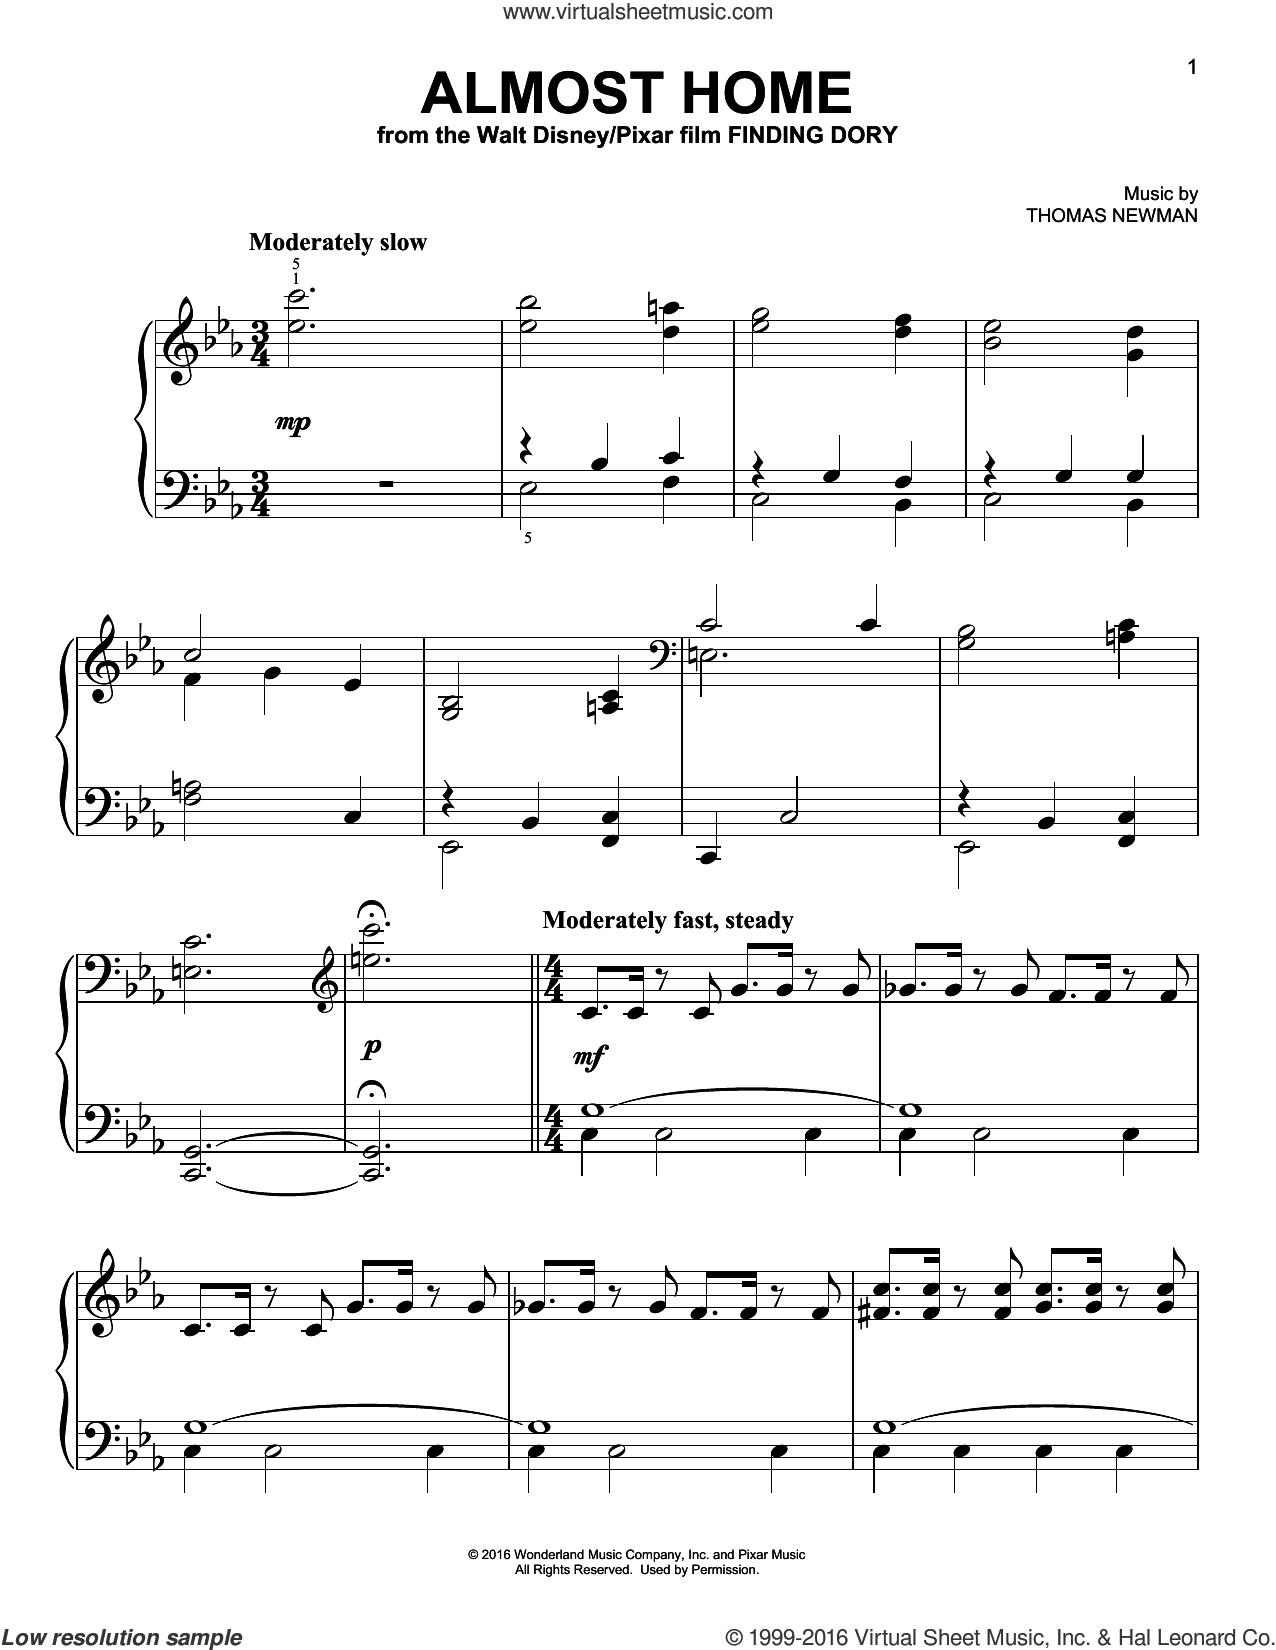 Almost Home sheet music for piano solo by Thomas Newman. Score Image Preview.